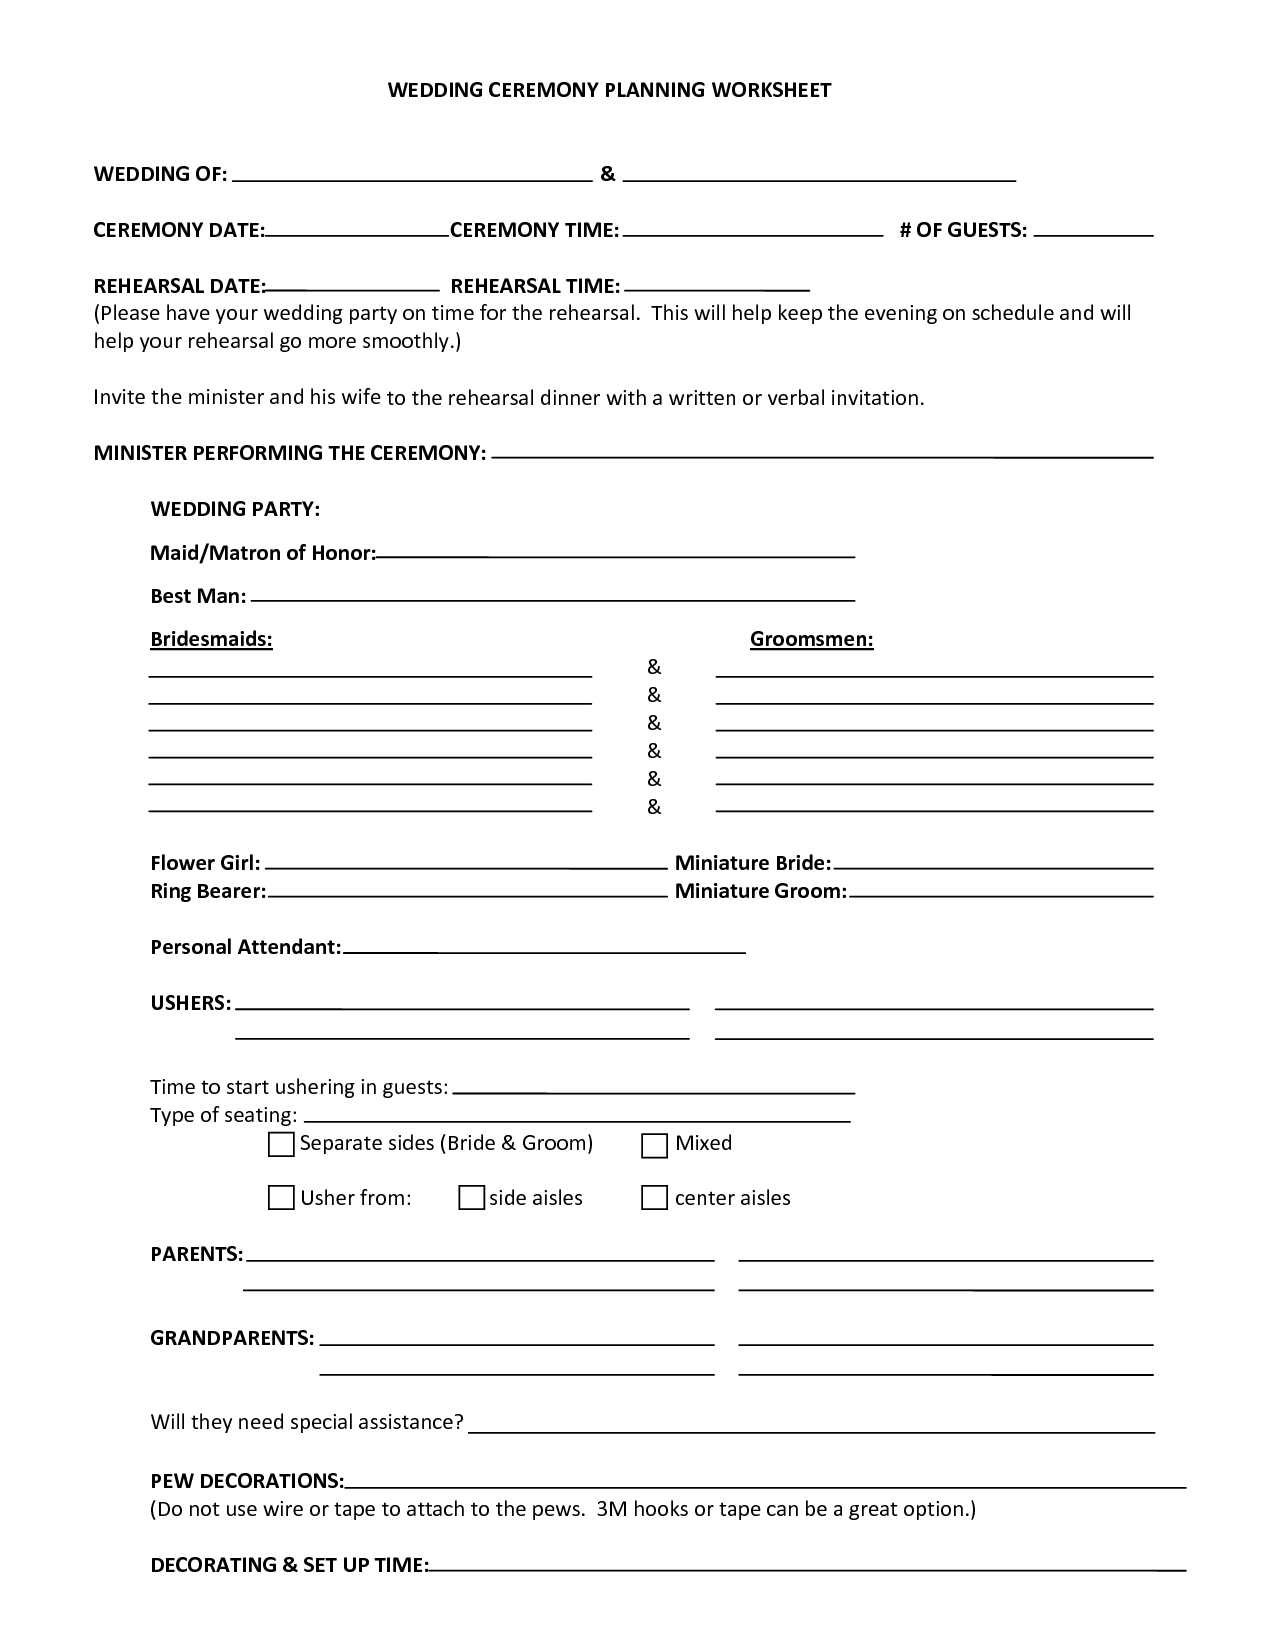 Worksheets Wedding Planning Worksheet wedding ceremony planning worksheet of ideas of